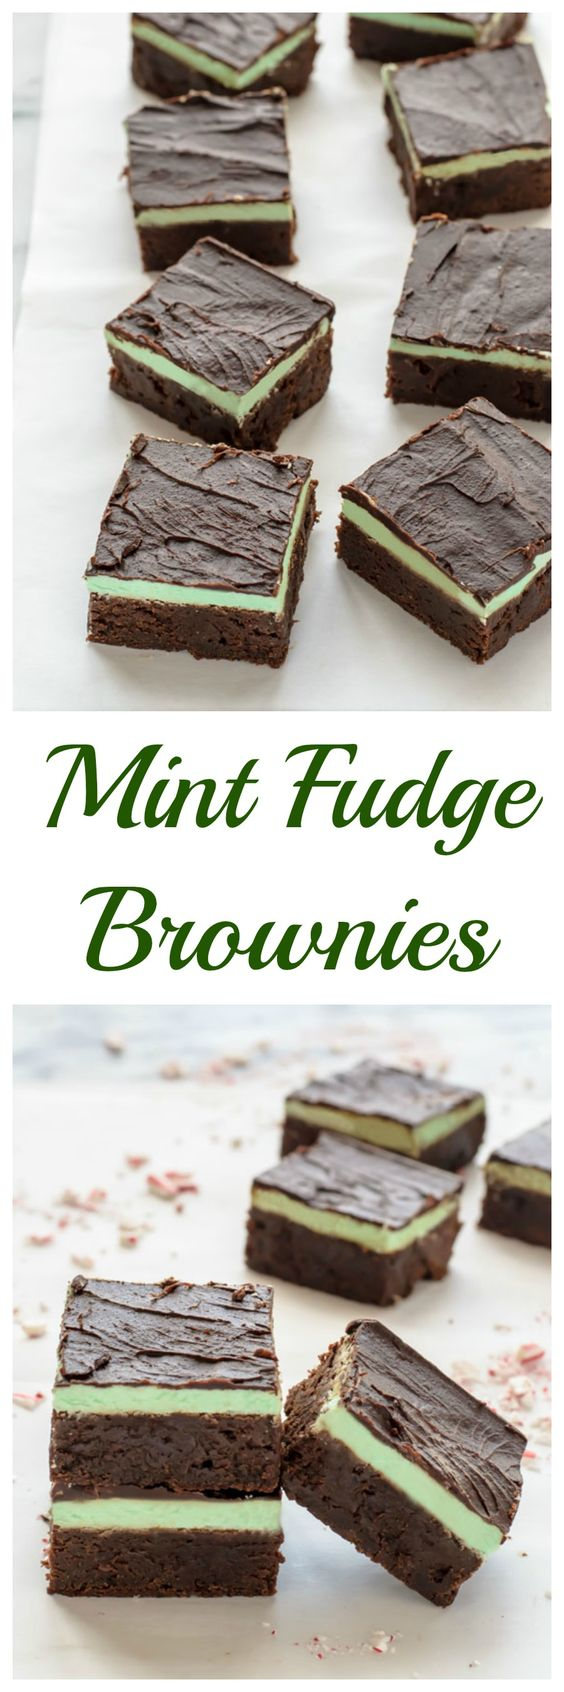 The BEST Mint Fudge Brownies #delicious #recipe #cake #desserts #dessertrecipes #yummy #delicious #food #sweet